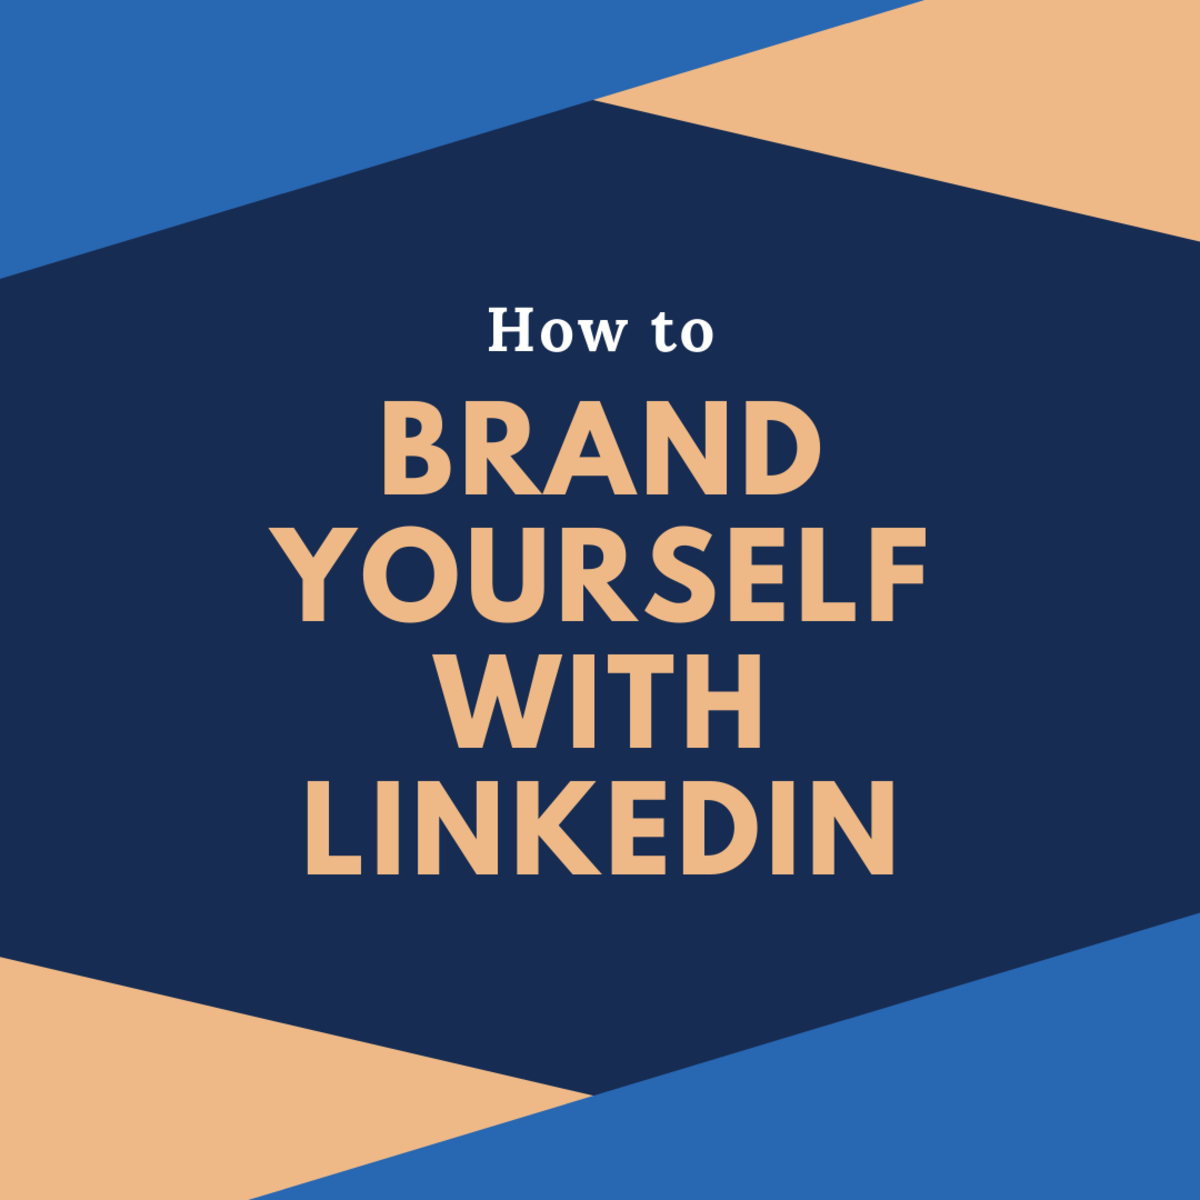 Branding Yourself With LinkedIn